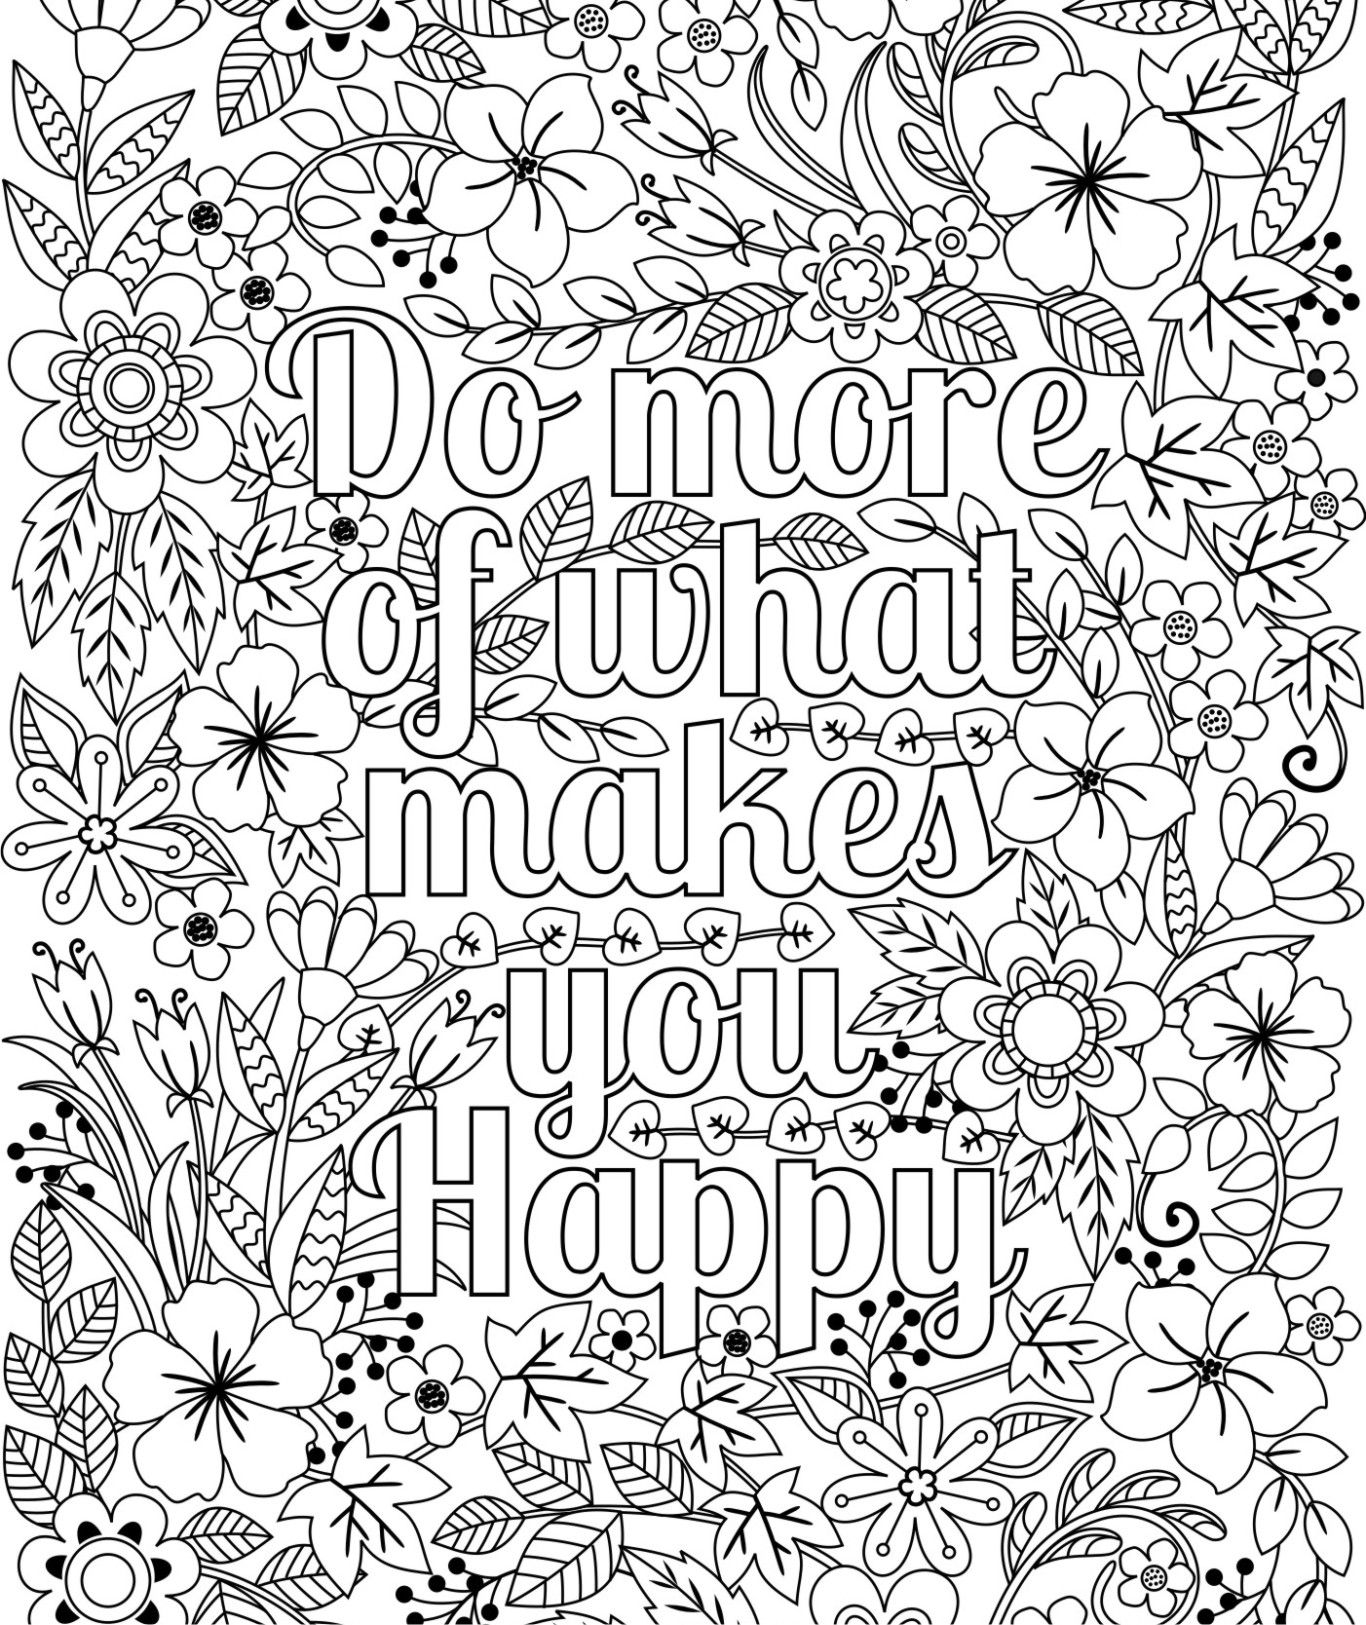 graphic relating to Flower Coloring Pages for Adults Printable referred to as Do Much more of What Can make Yourself Pleased - Coloring Web page for Small children